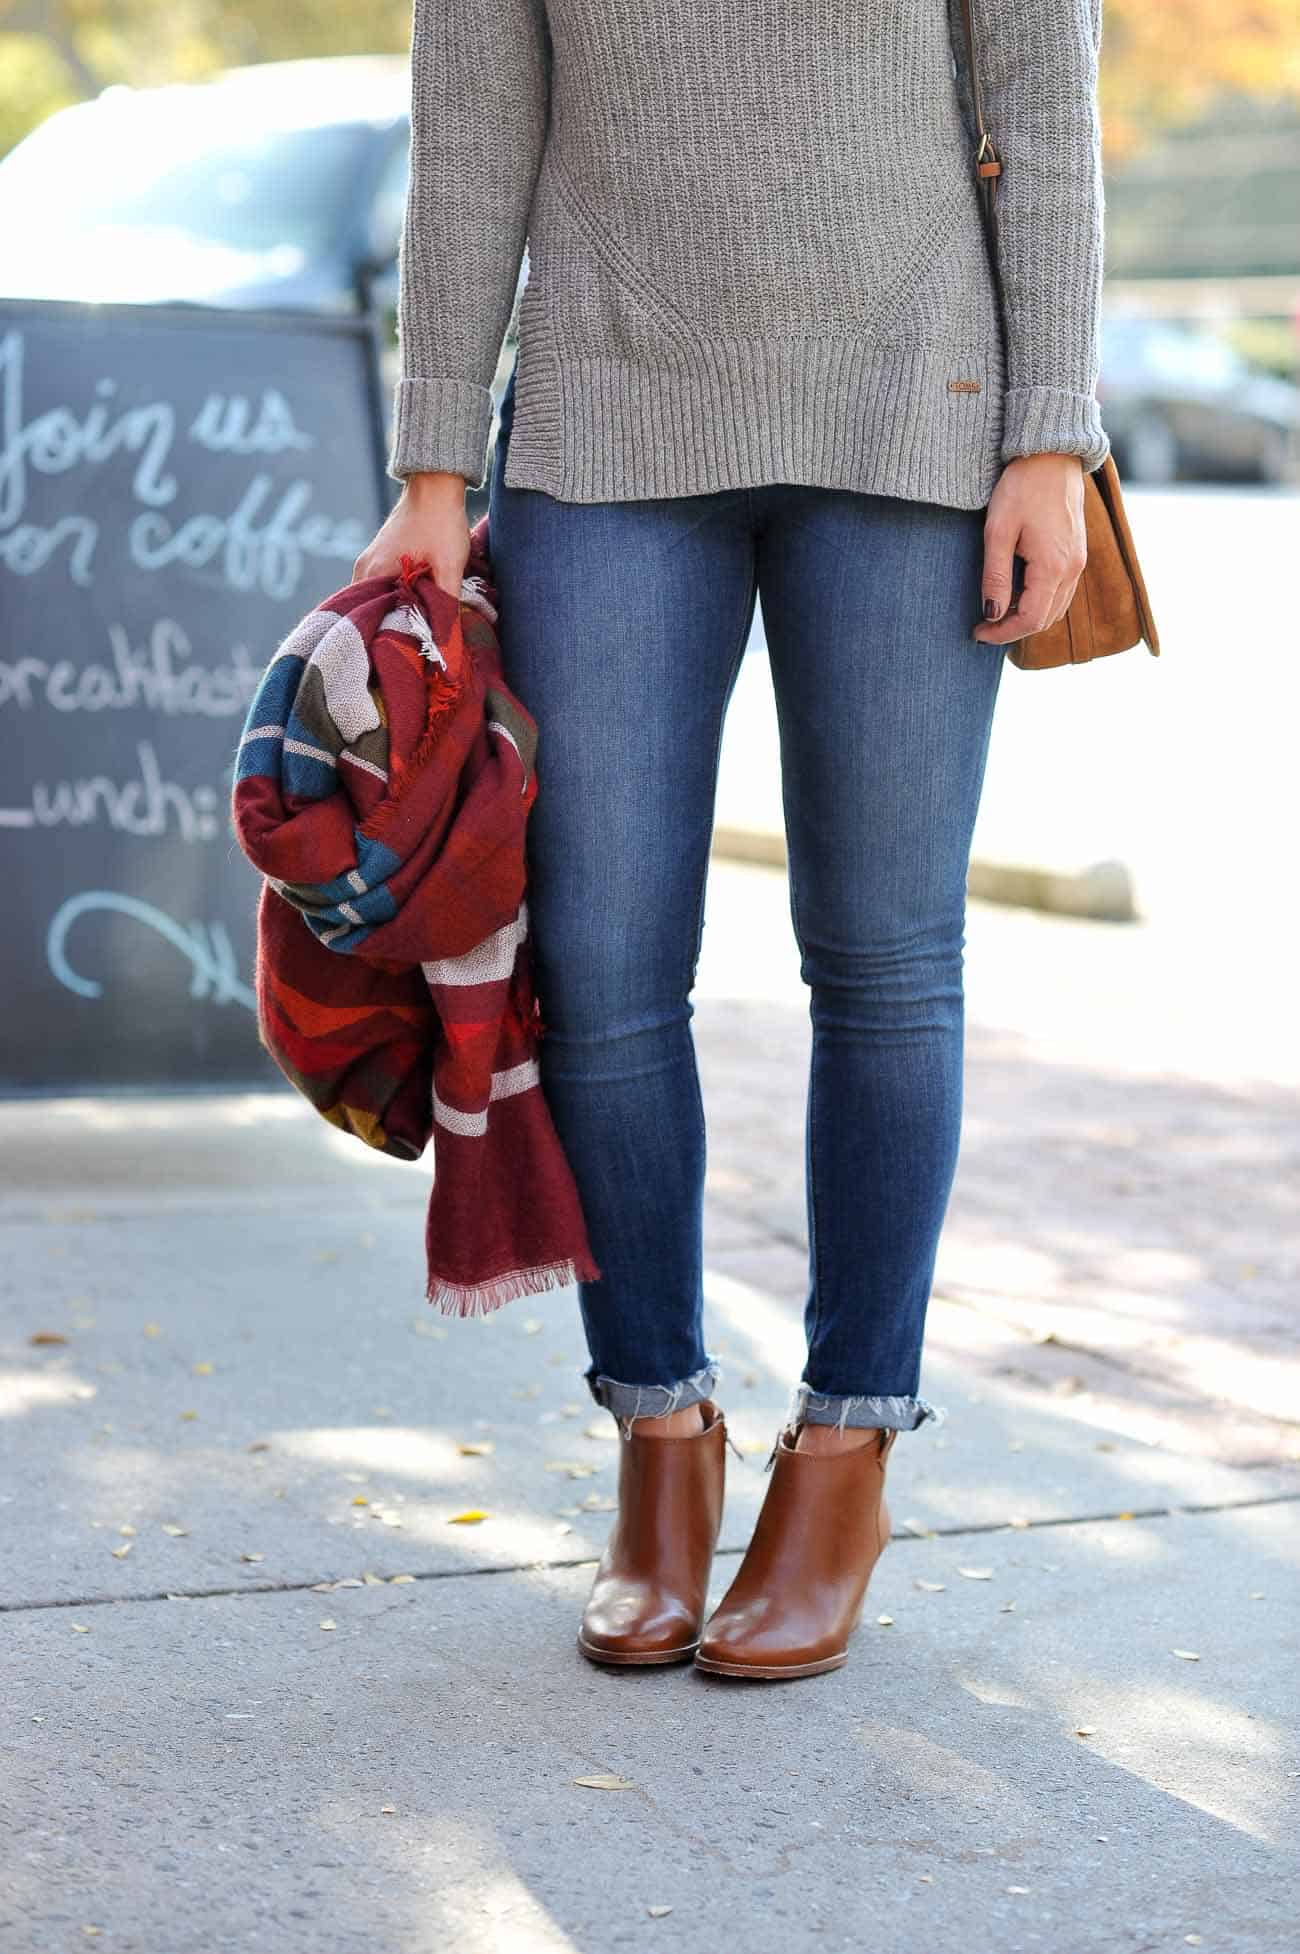 madewell-booties-fall-outfits-with-blanket-scarves-blanket-scarf-my-style-vita-mystylevita-7-of-7